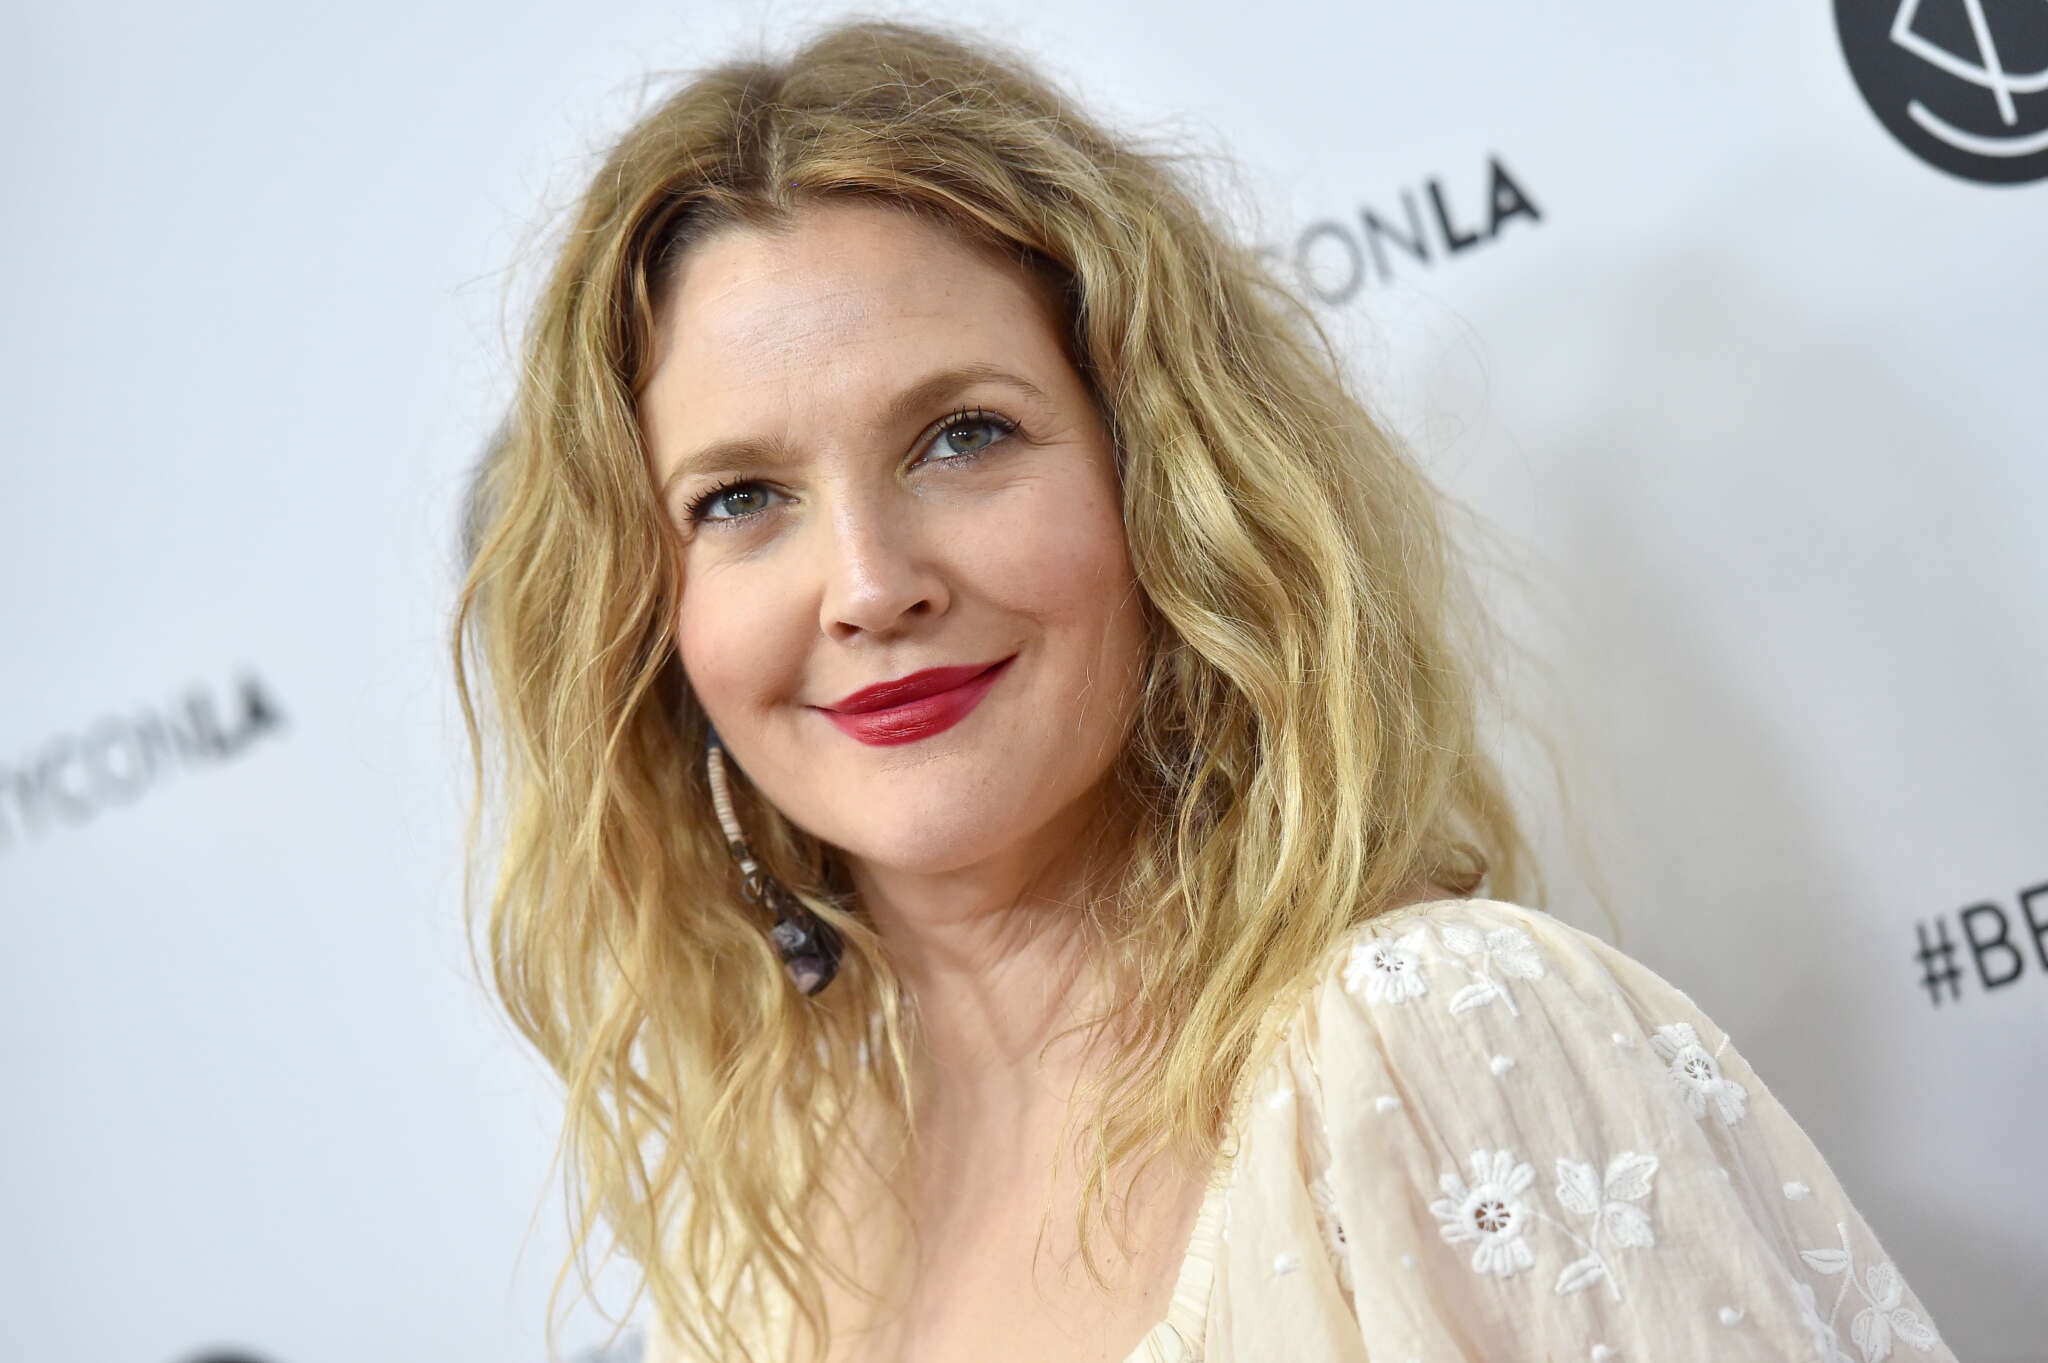 drew-barrymore-opens-up-about-spending-a-year-and-a-half-at-a-really-strict-psychiatric-hospital-at-13